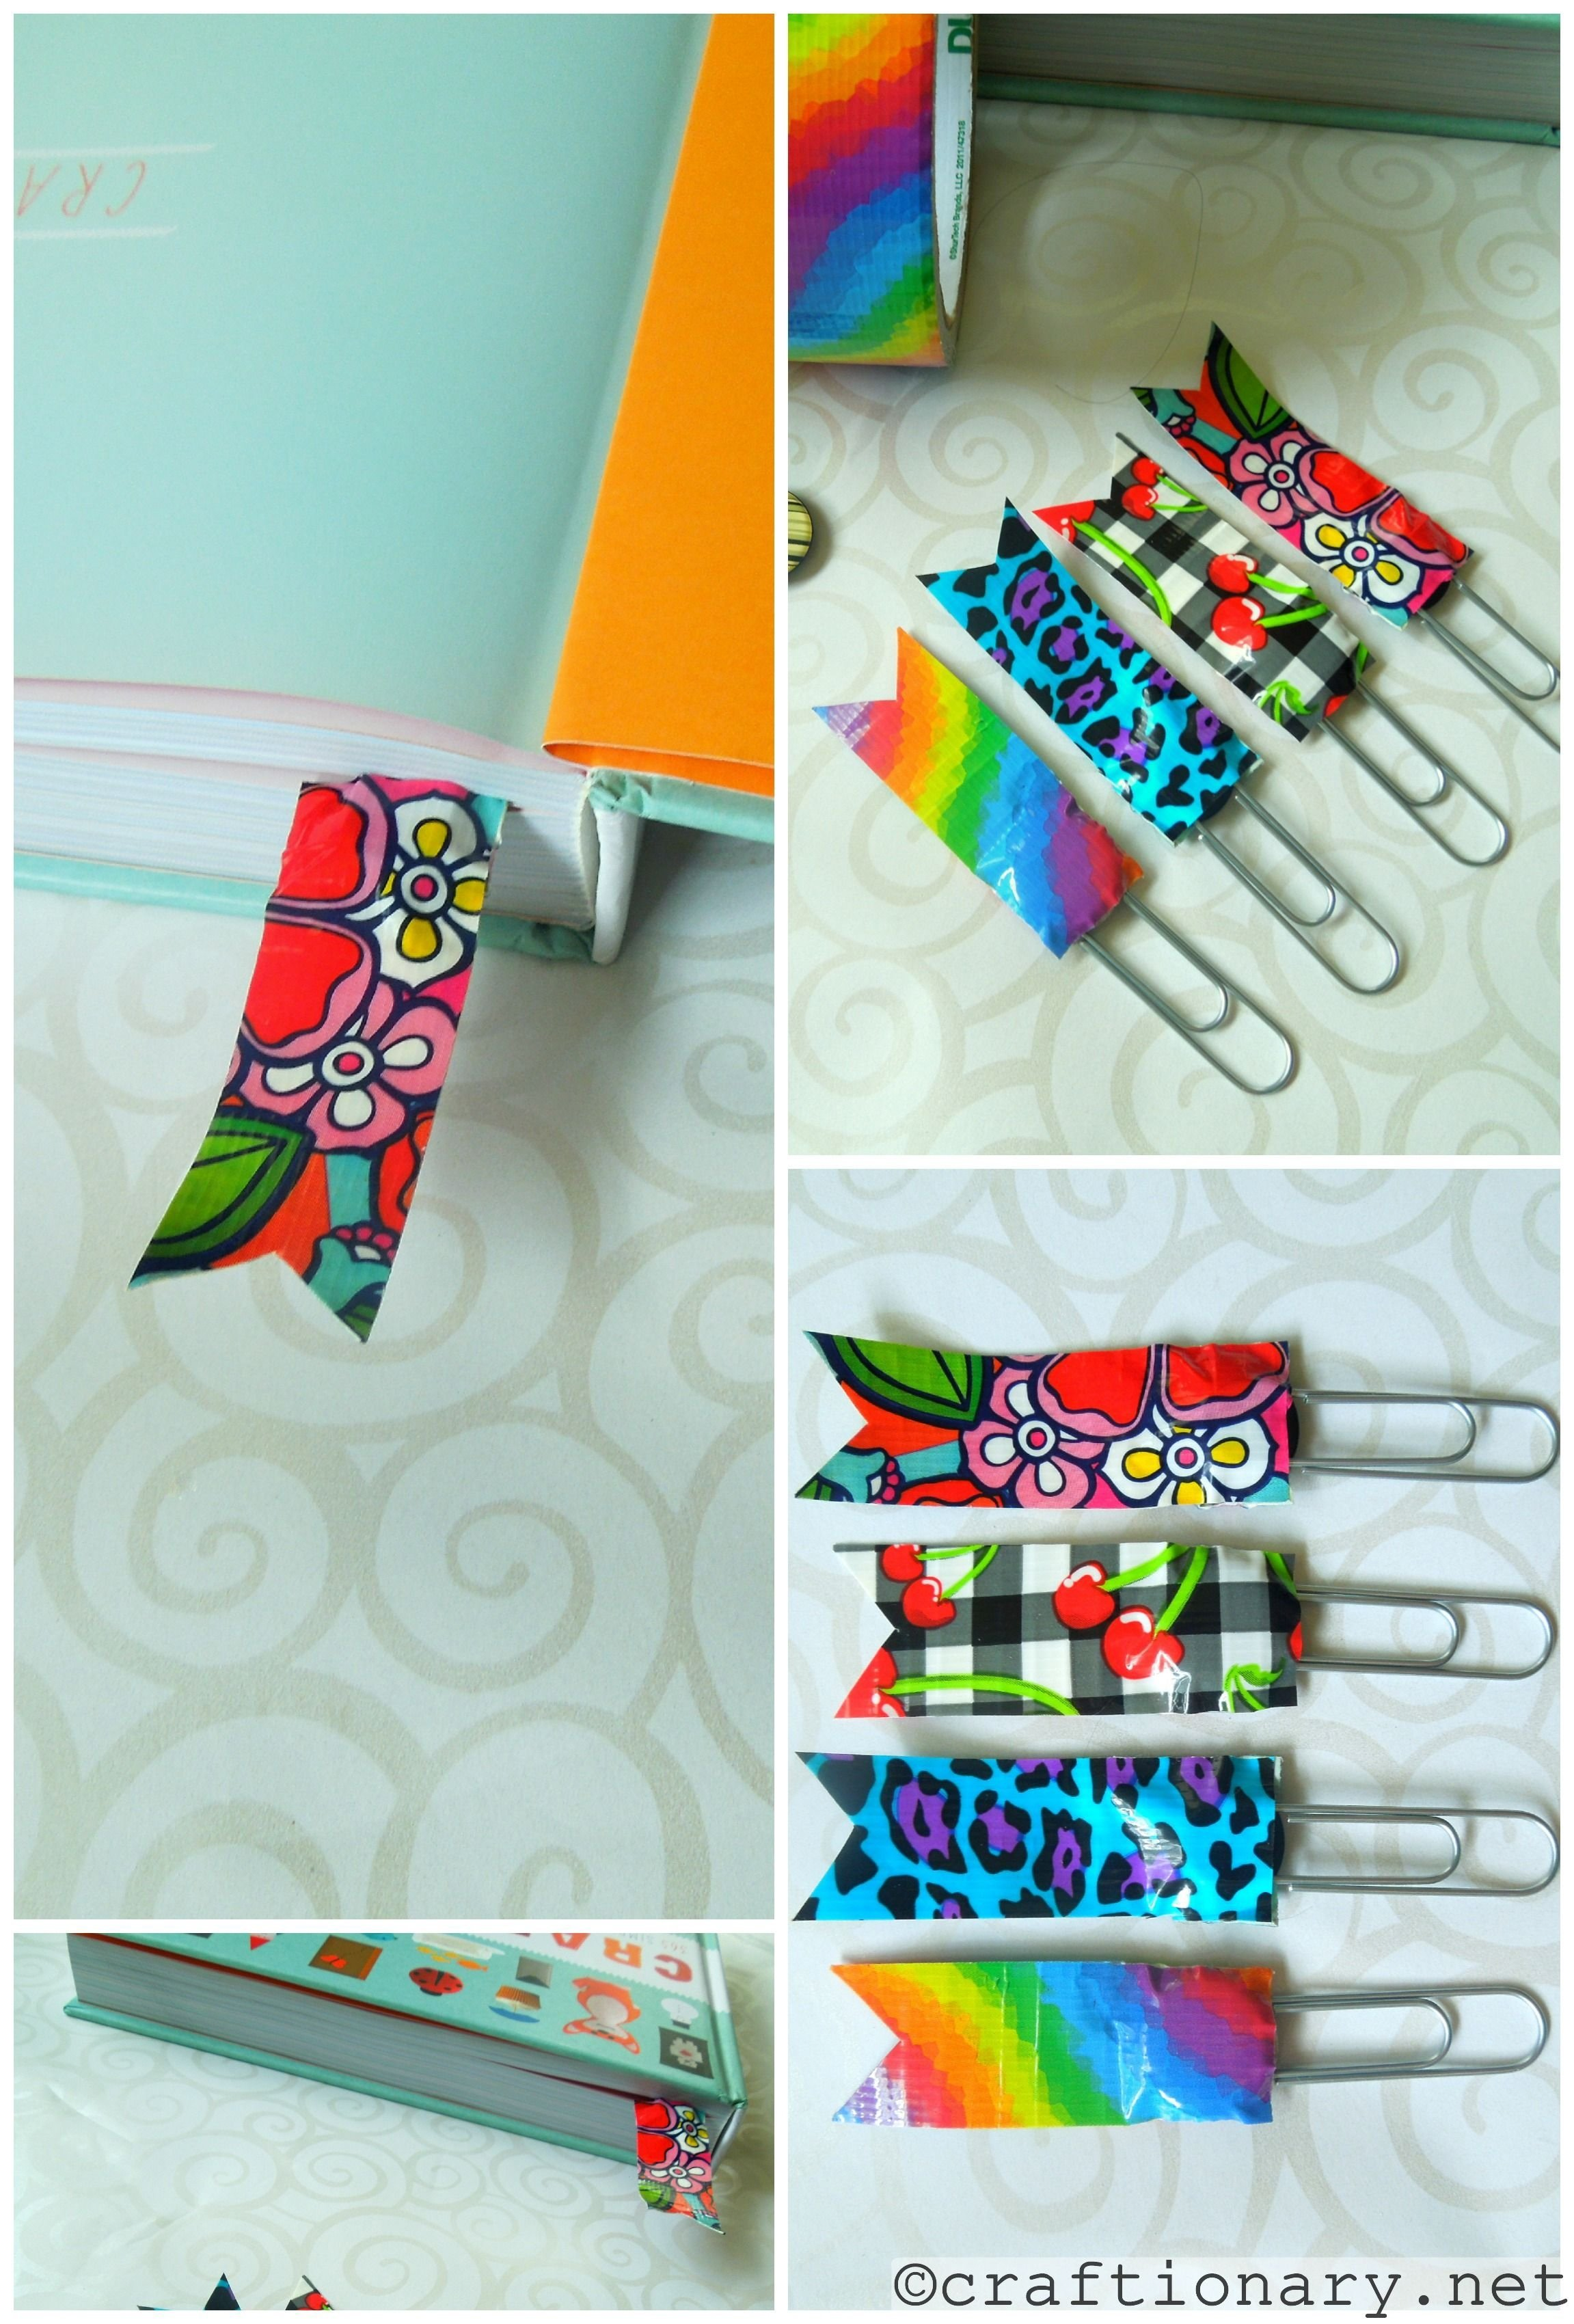 10 Attractive Duct Tape Ideas For Girls like flag look duct tape bookmarks tierra este 84553 2020